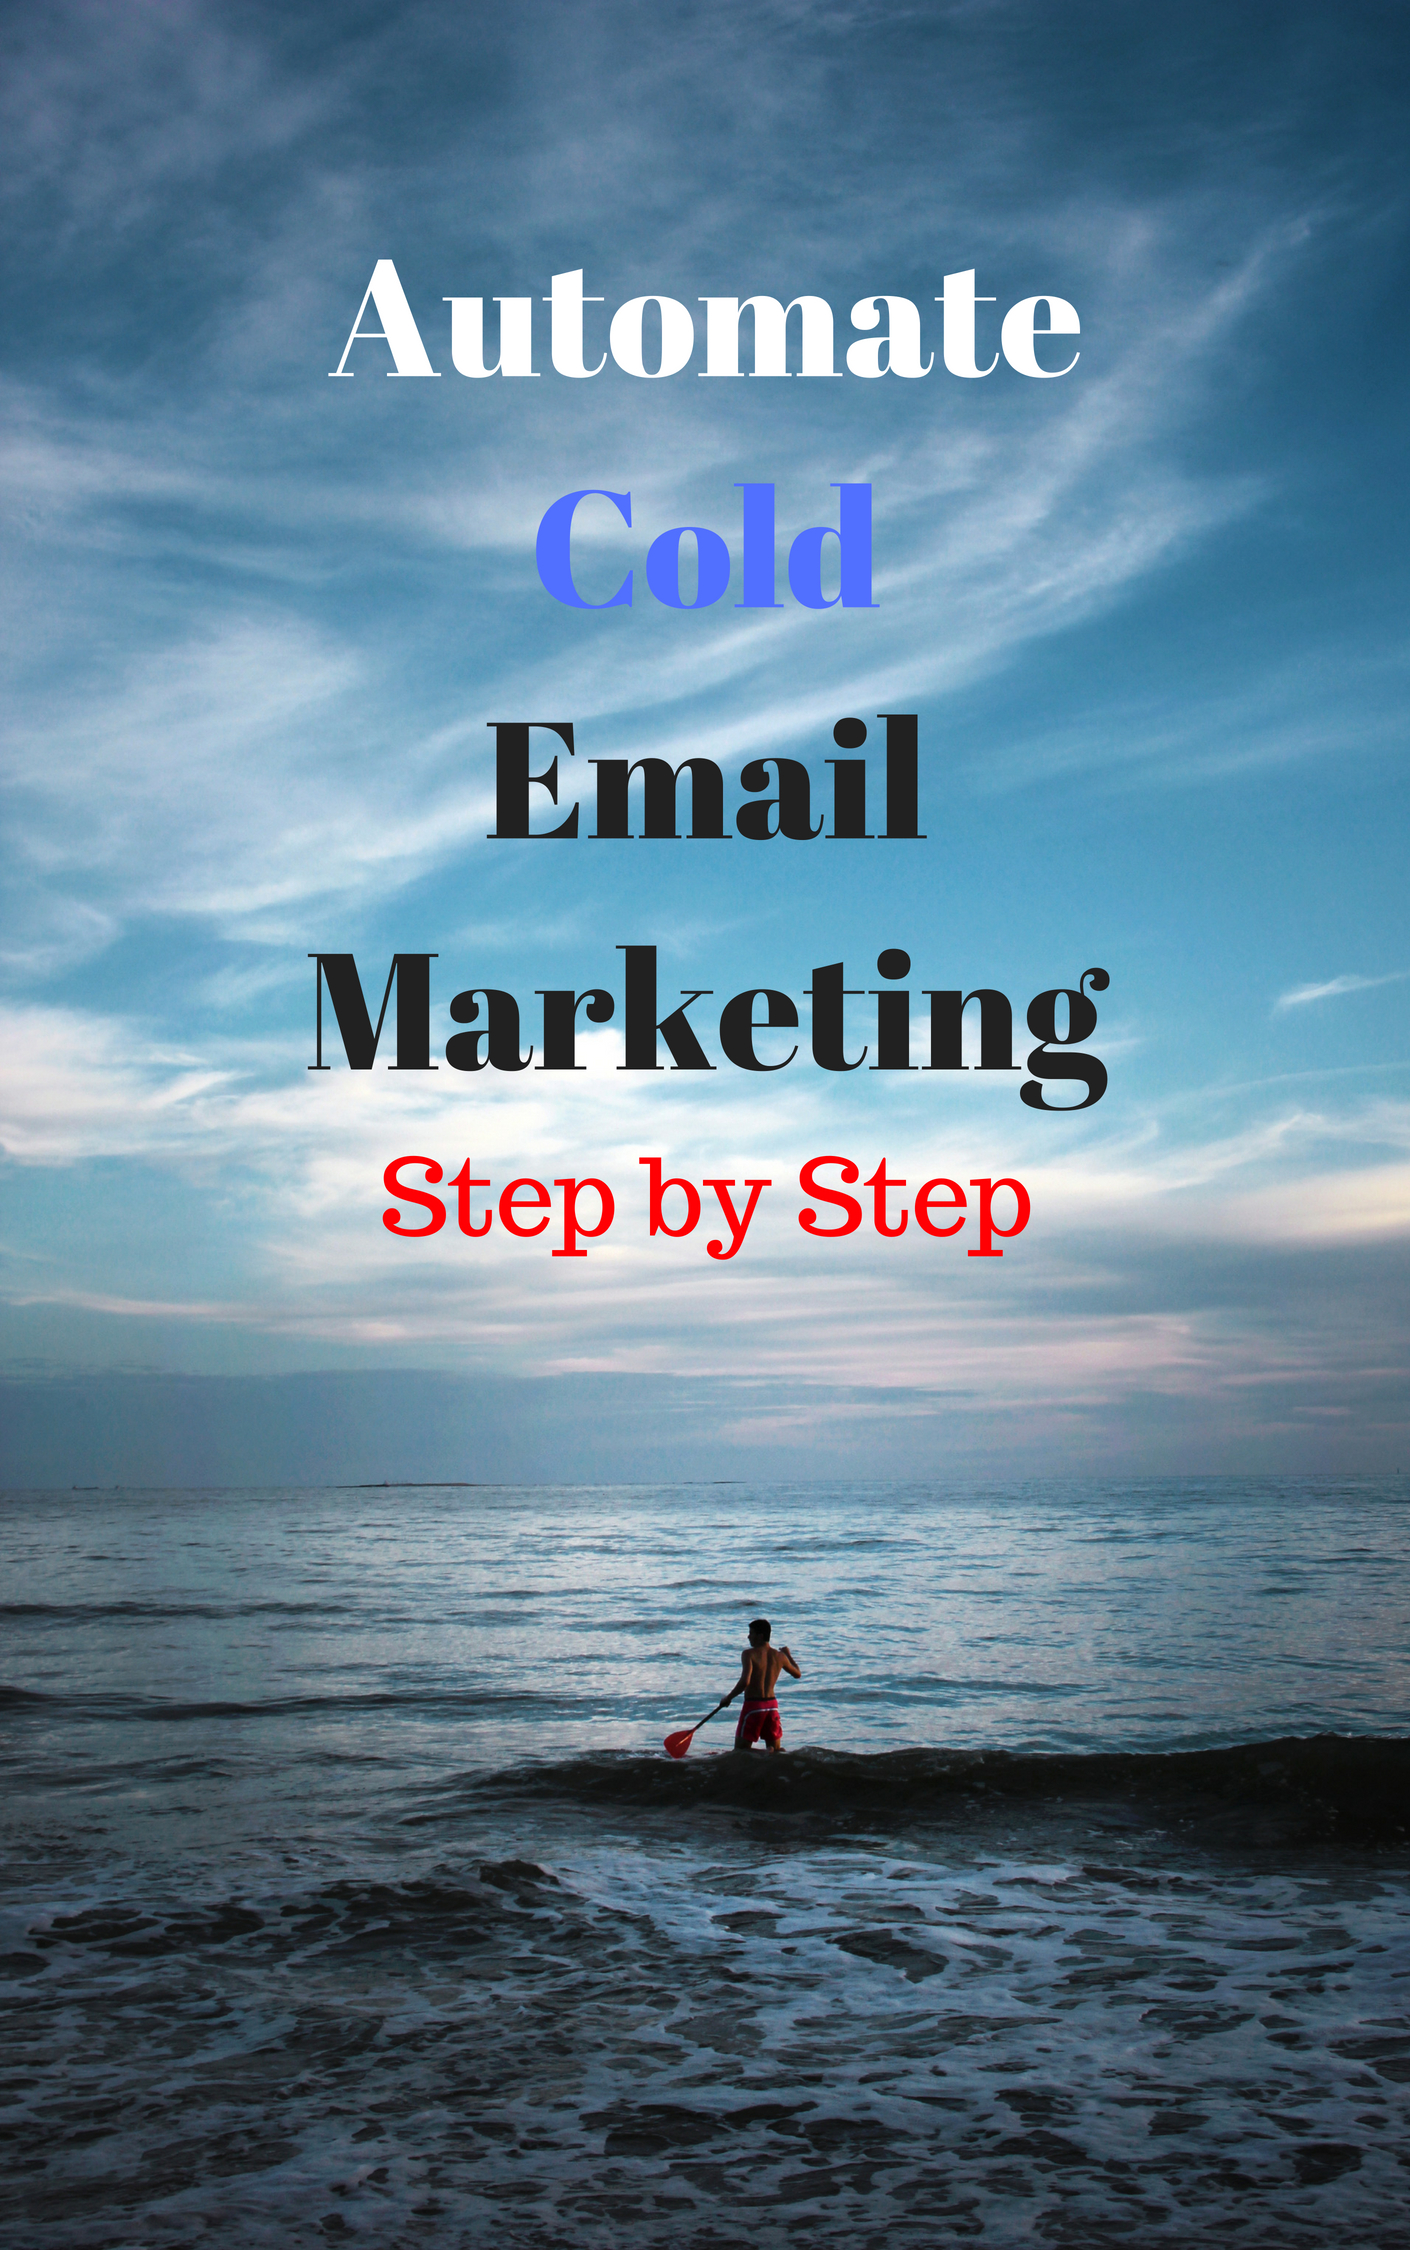 Automated Cold Email Marketing STEP by STEP!